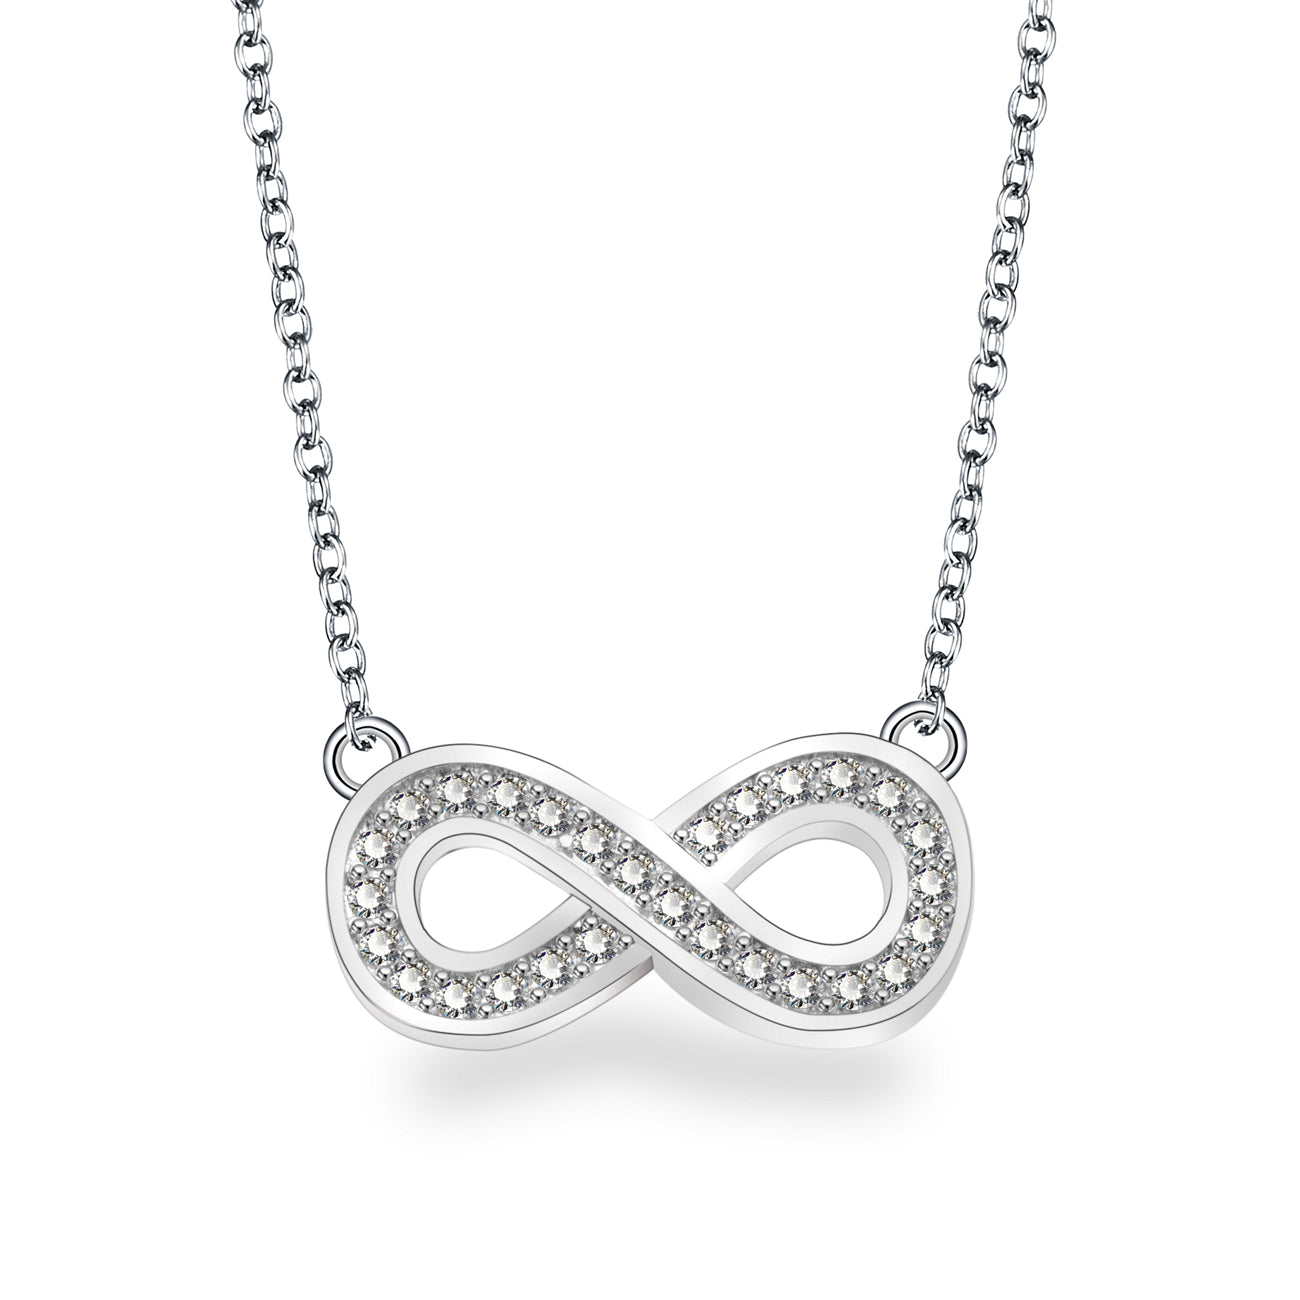 ADLEY INFINITY NECKLACE